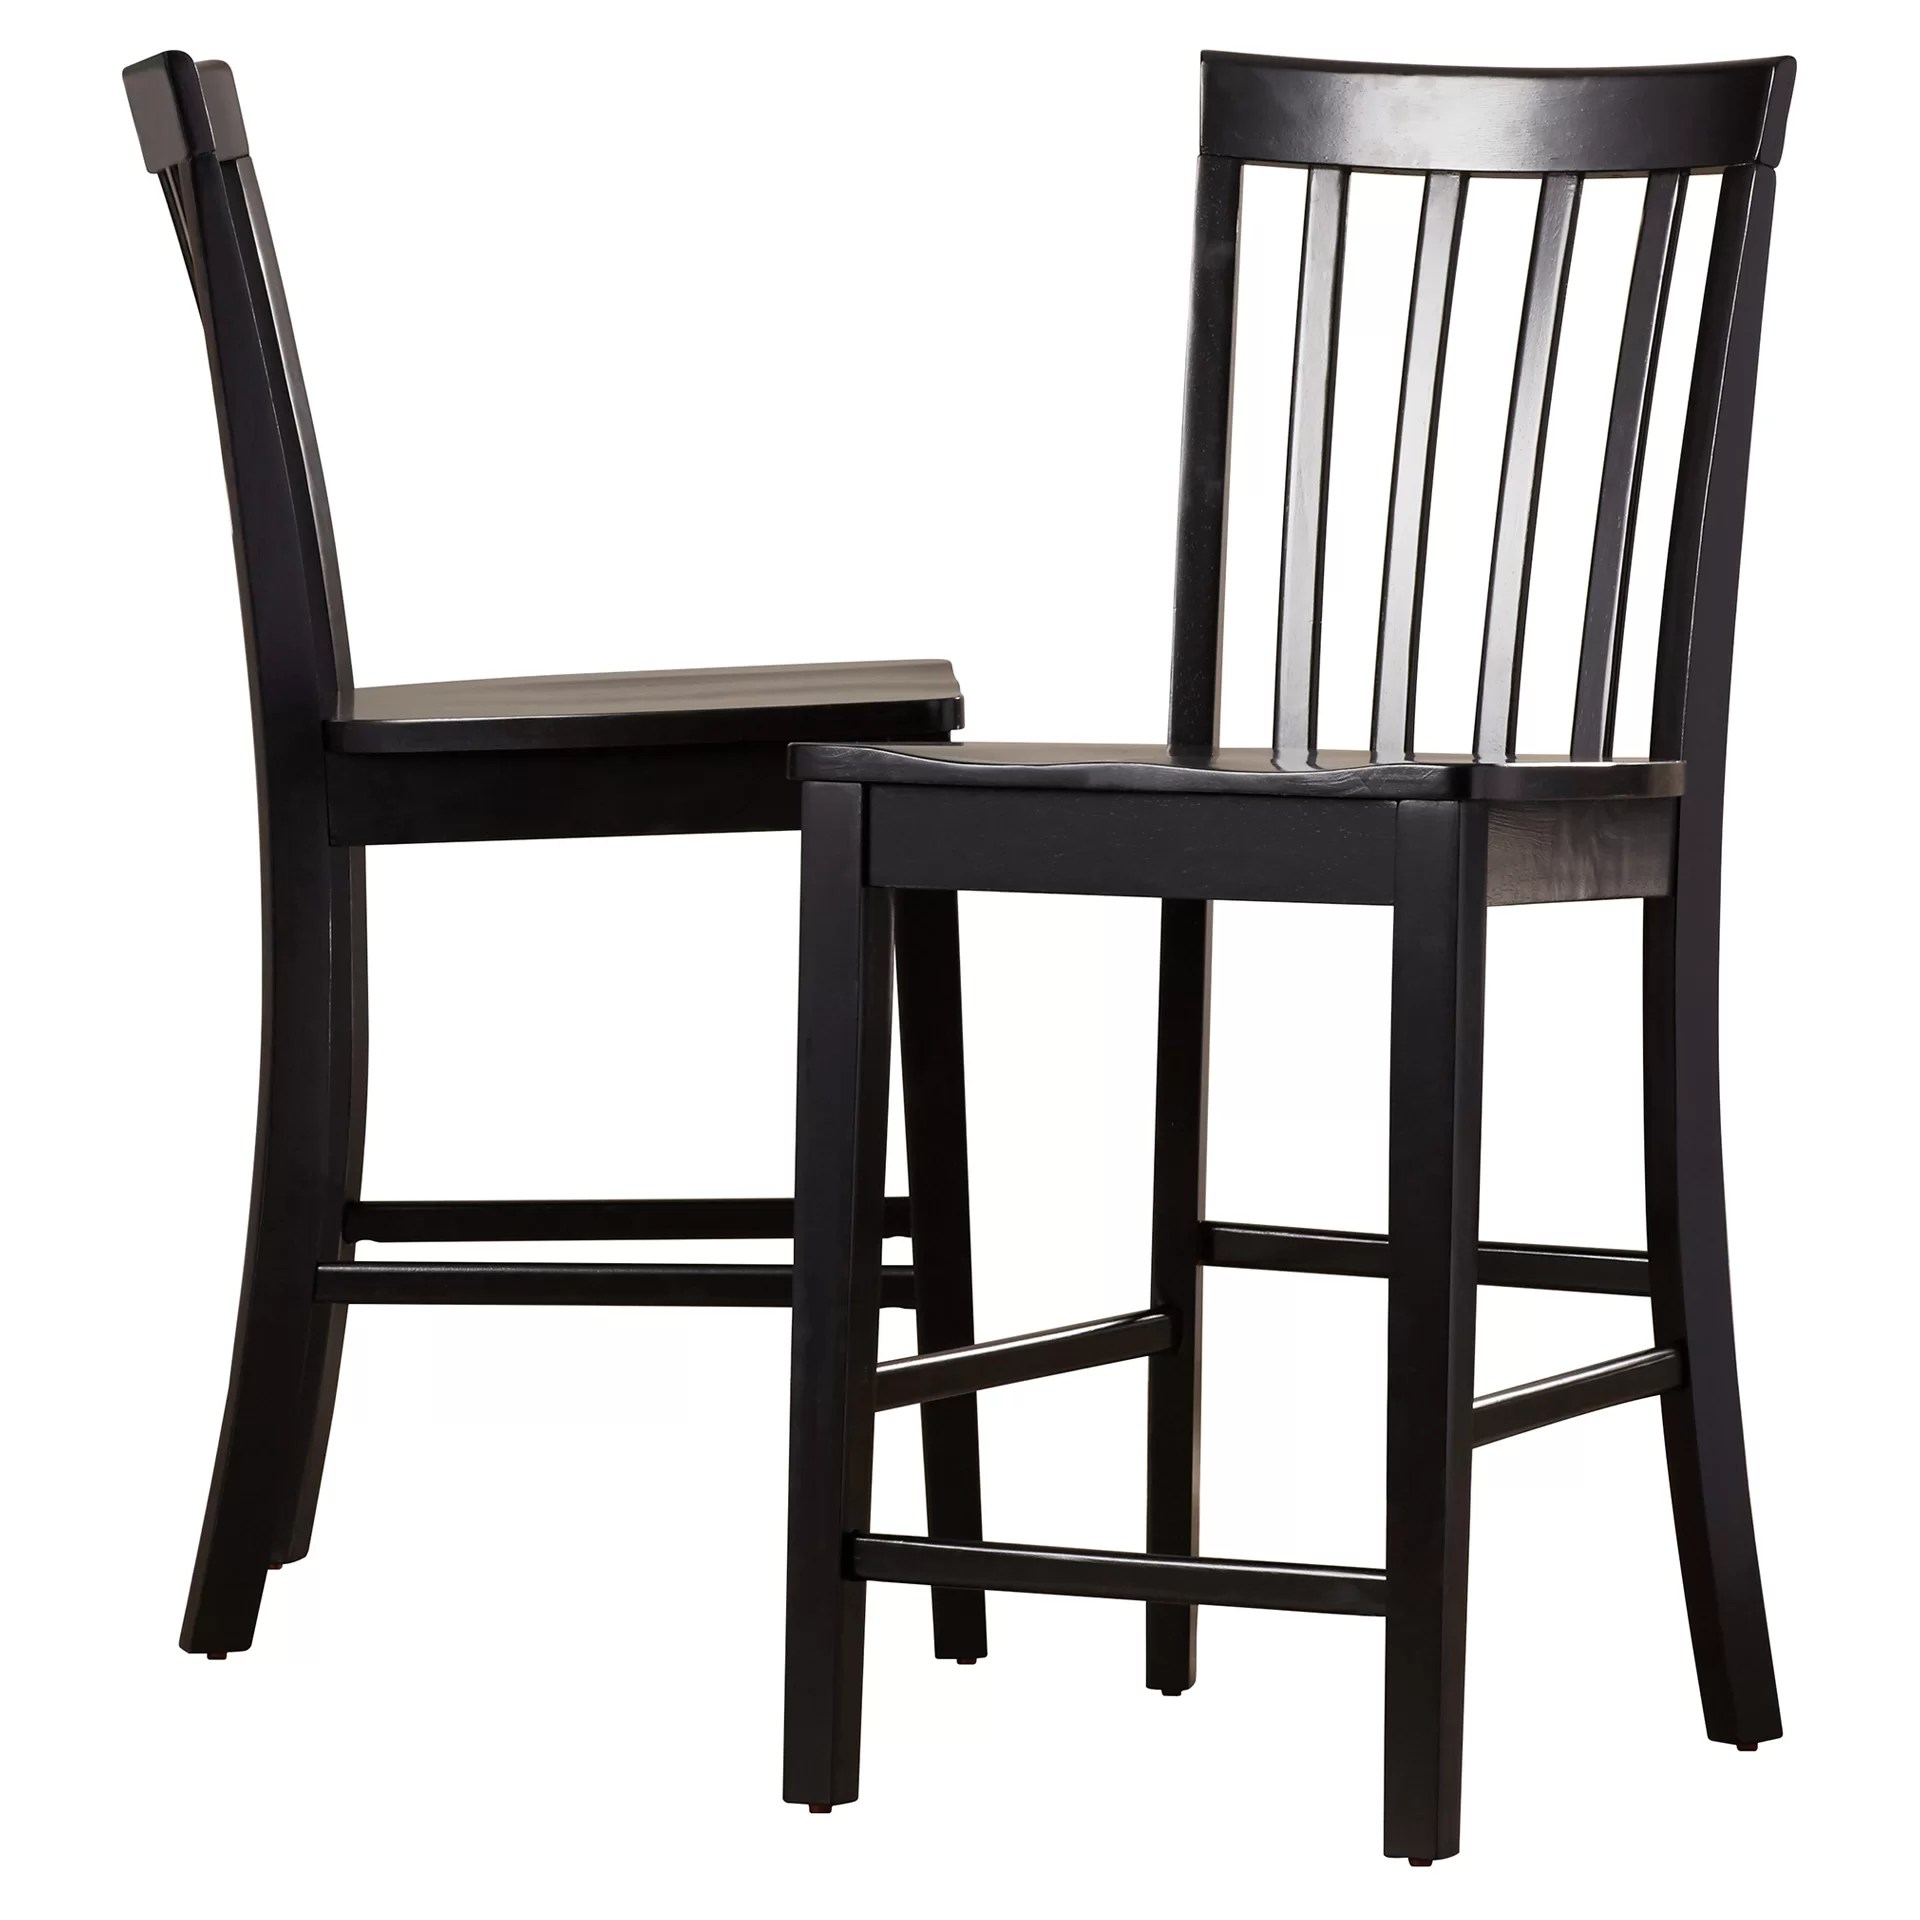 Bar And Stools For Home Darby Home Co 24 Quot Bar Stool And Reviews Wayfair